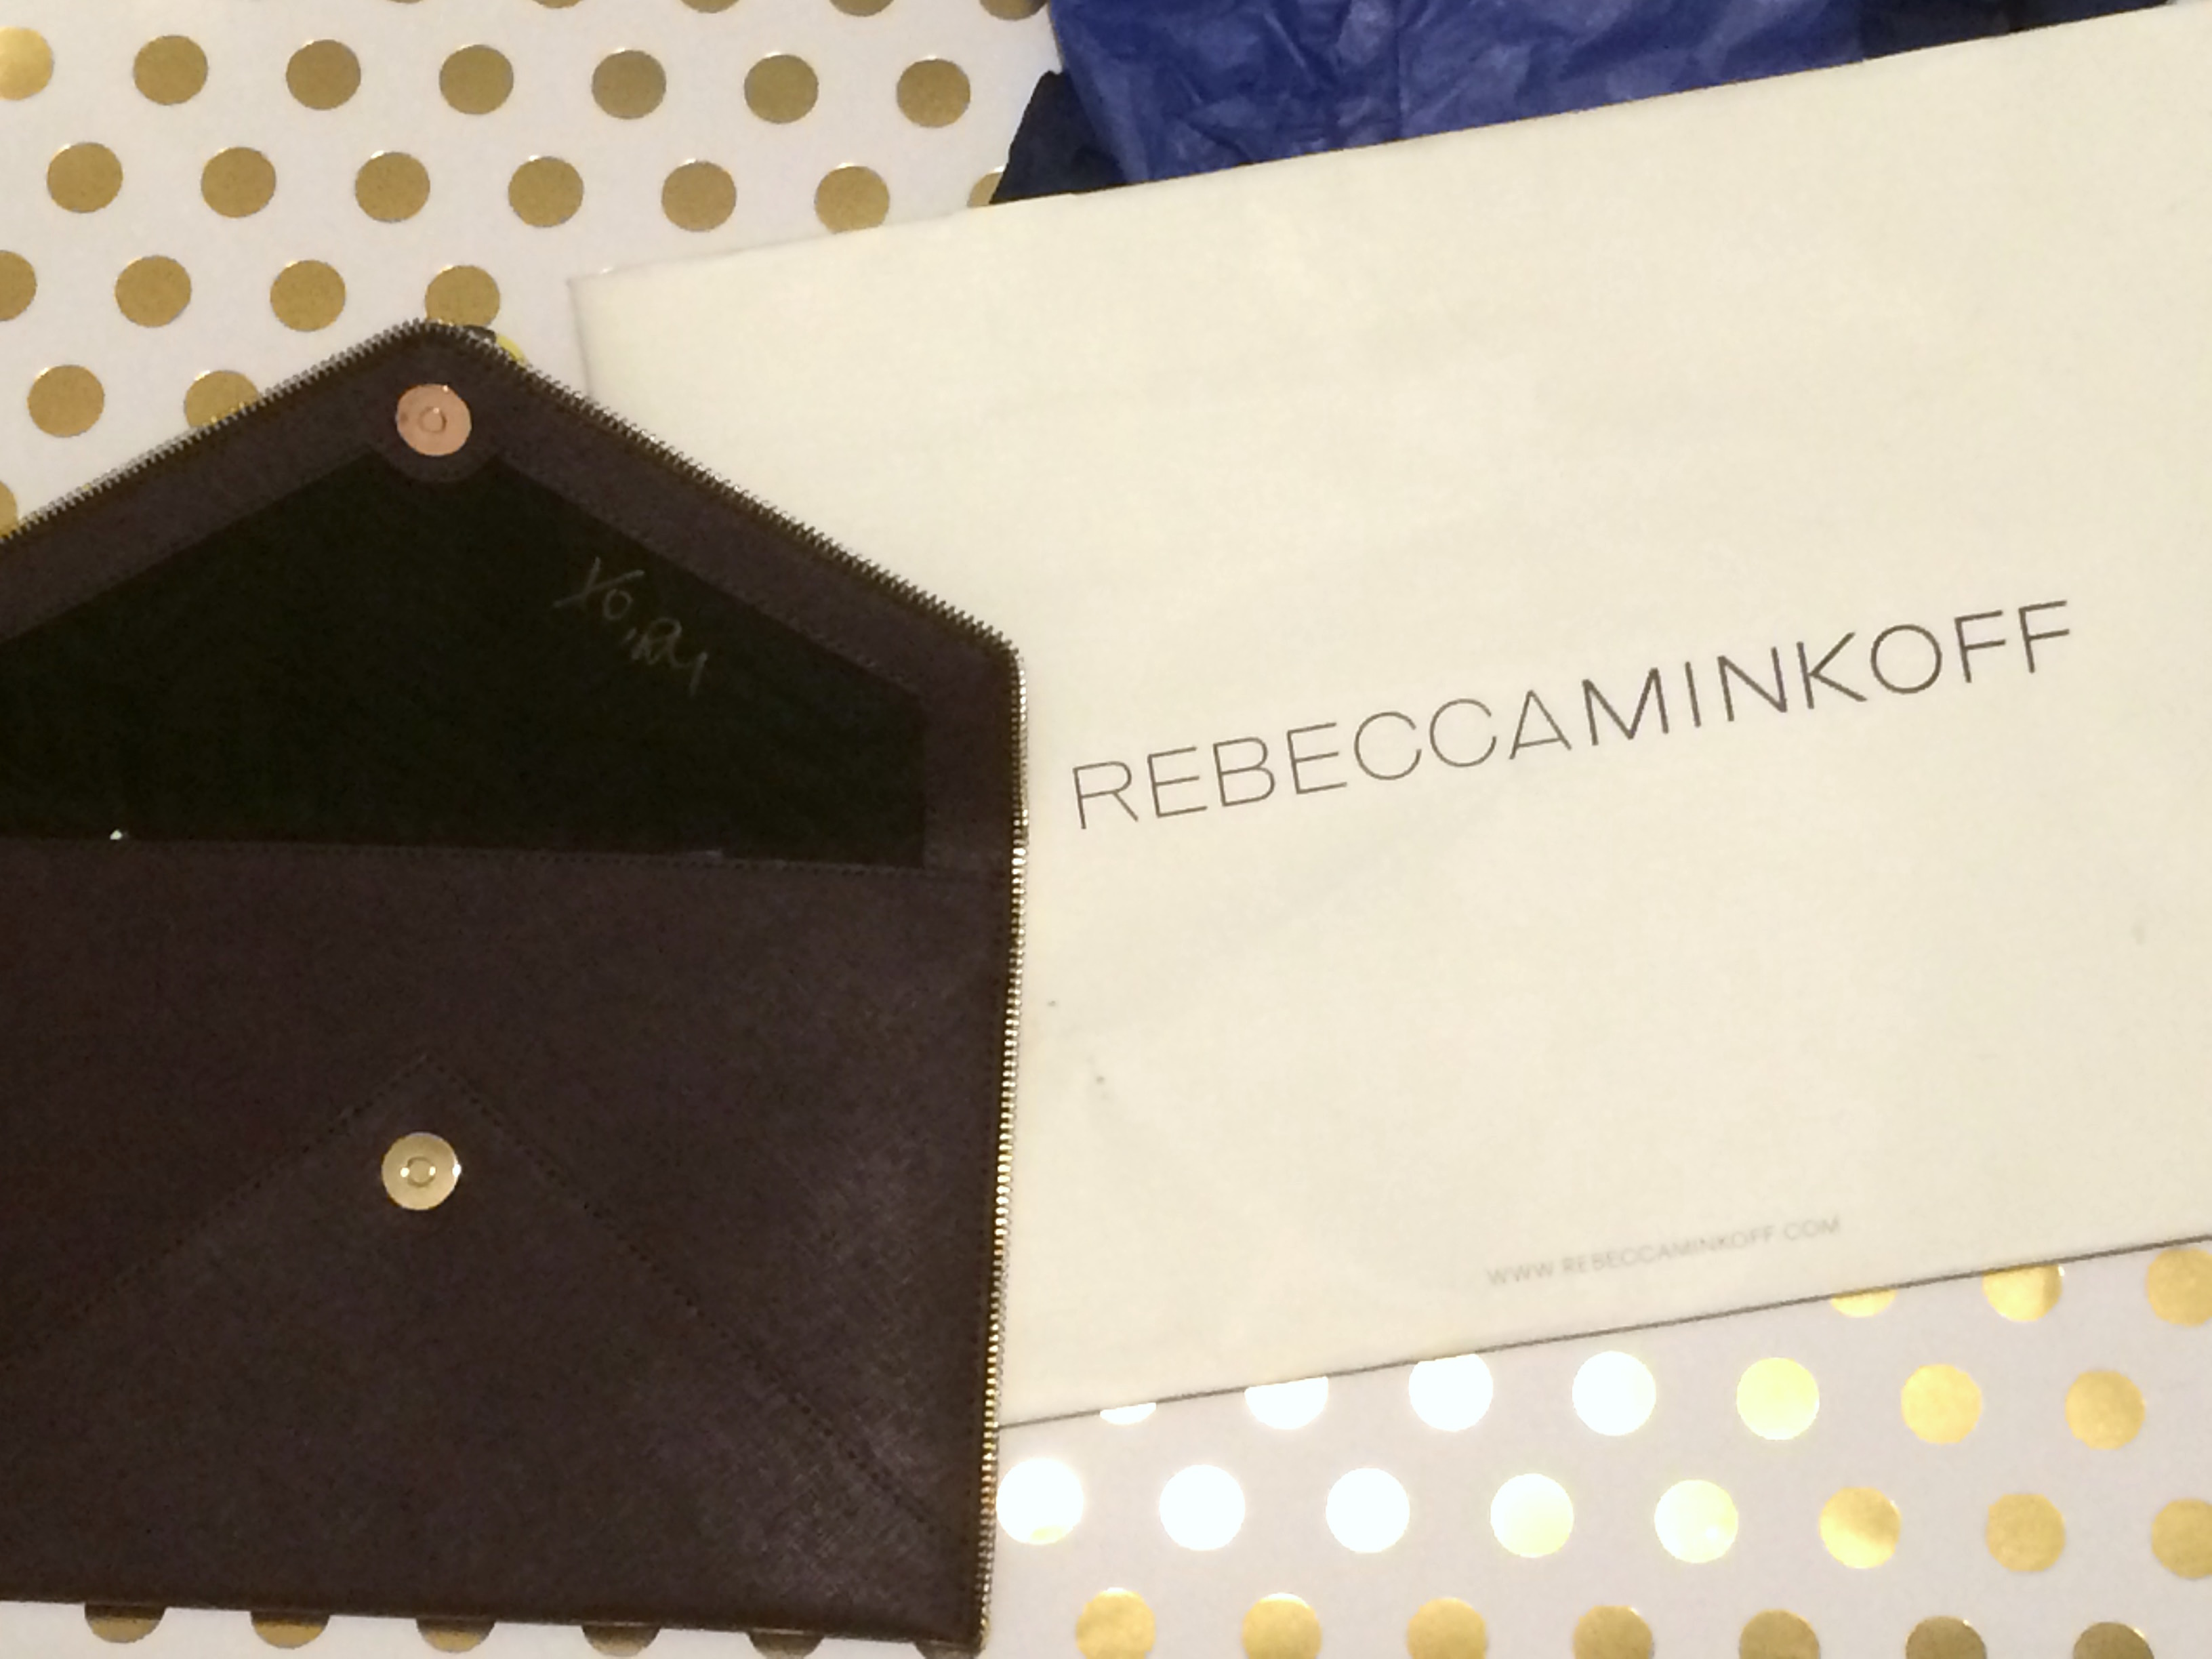 Rebecca Minkoff Fall 2016 signed clutch